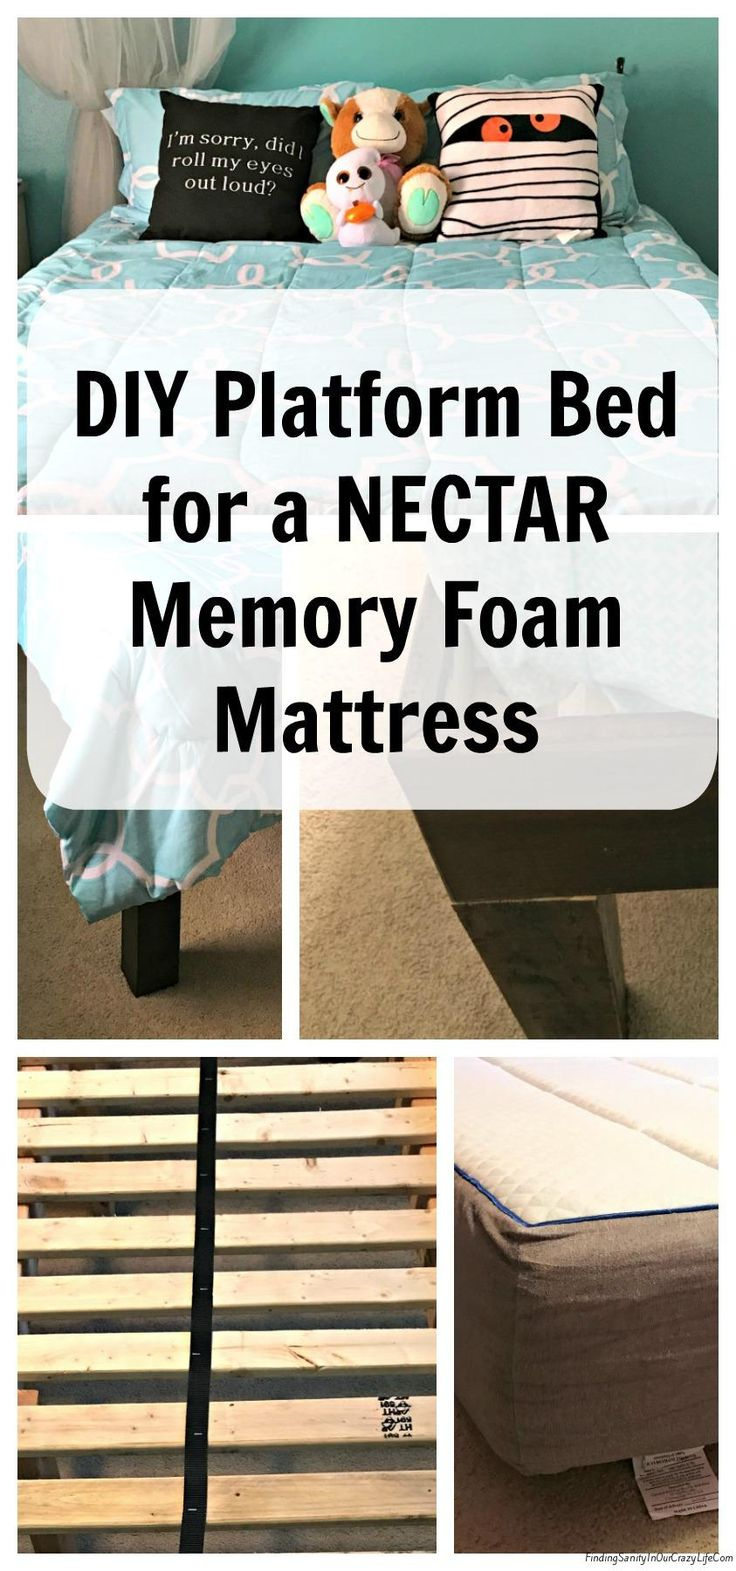 1560 best crafts diy ideas images on pinterest mason jar crafts holiday crafts and crafts - How to make a simple platform bed ...